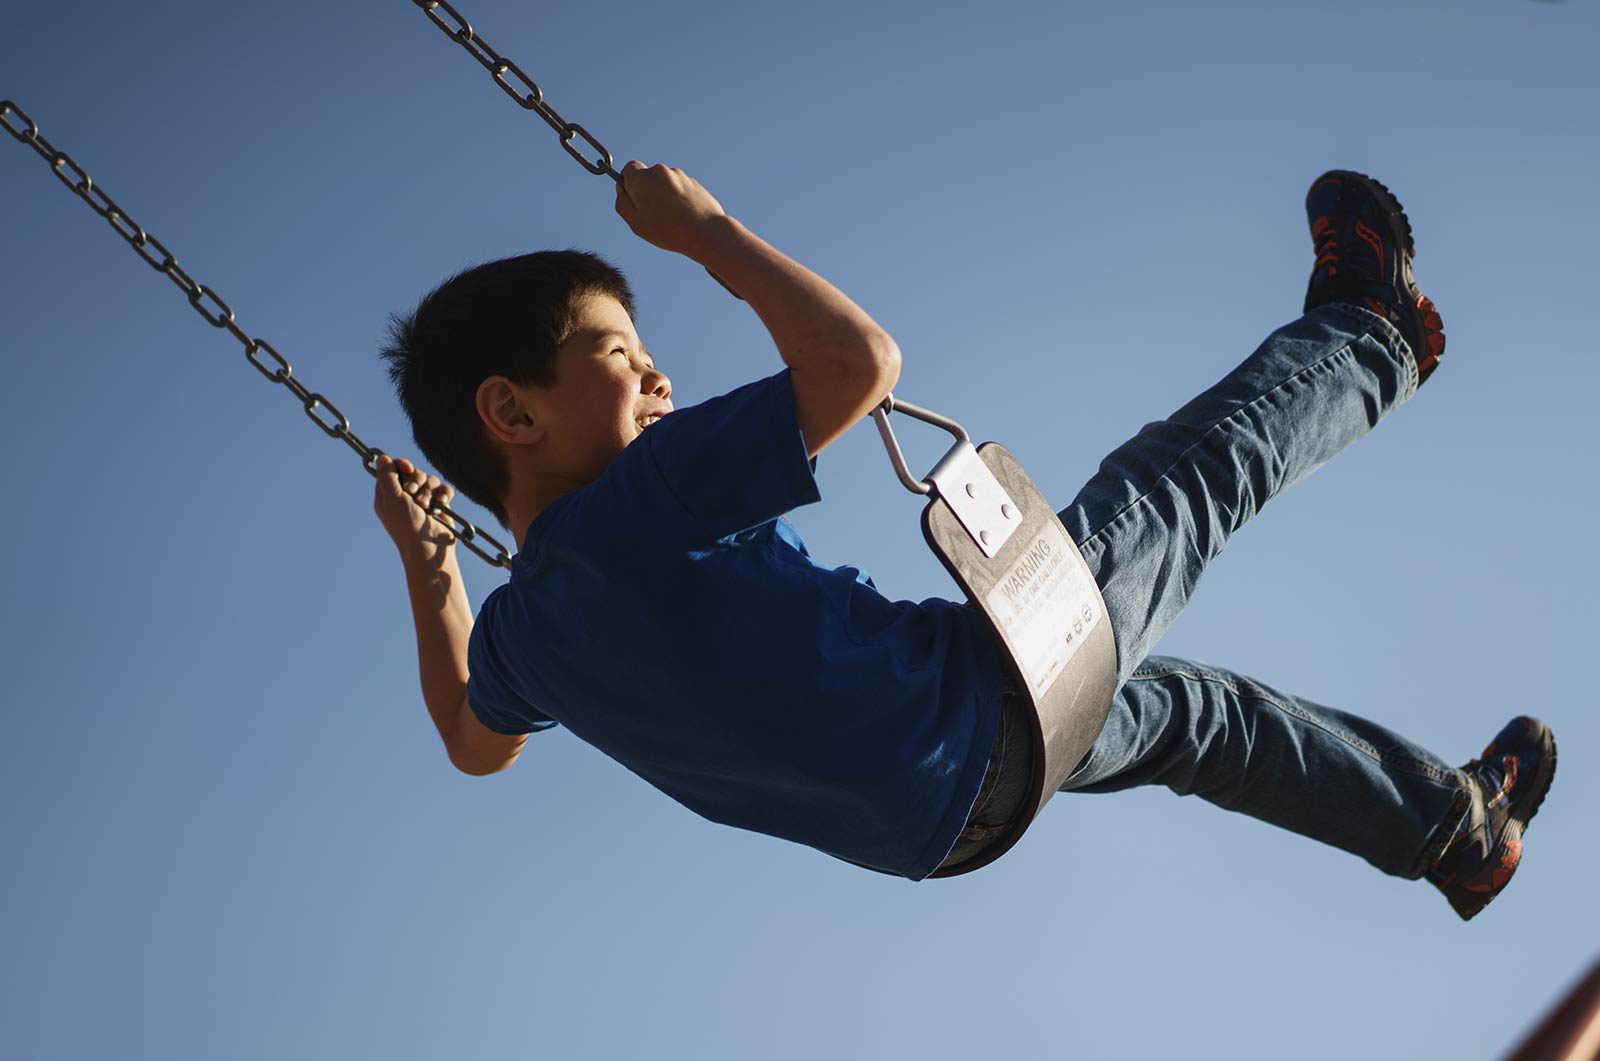 Child laughing on swing.